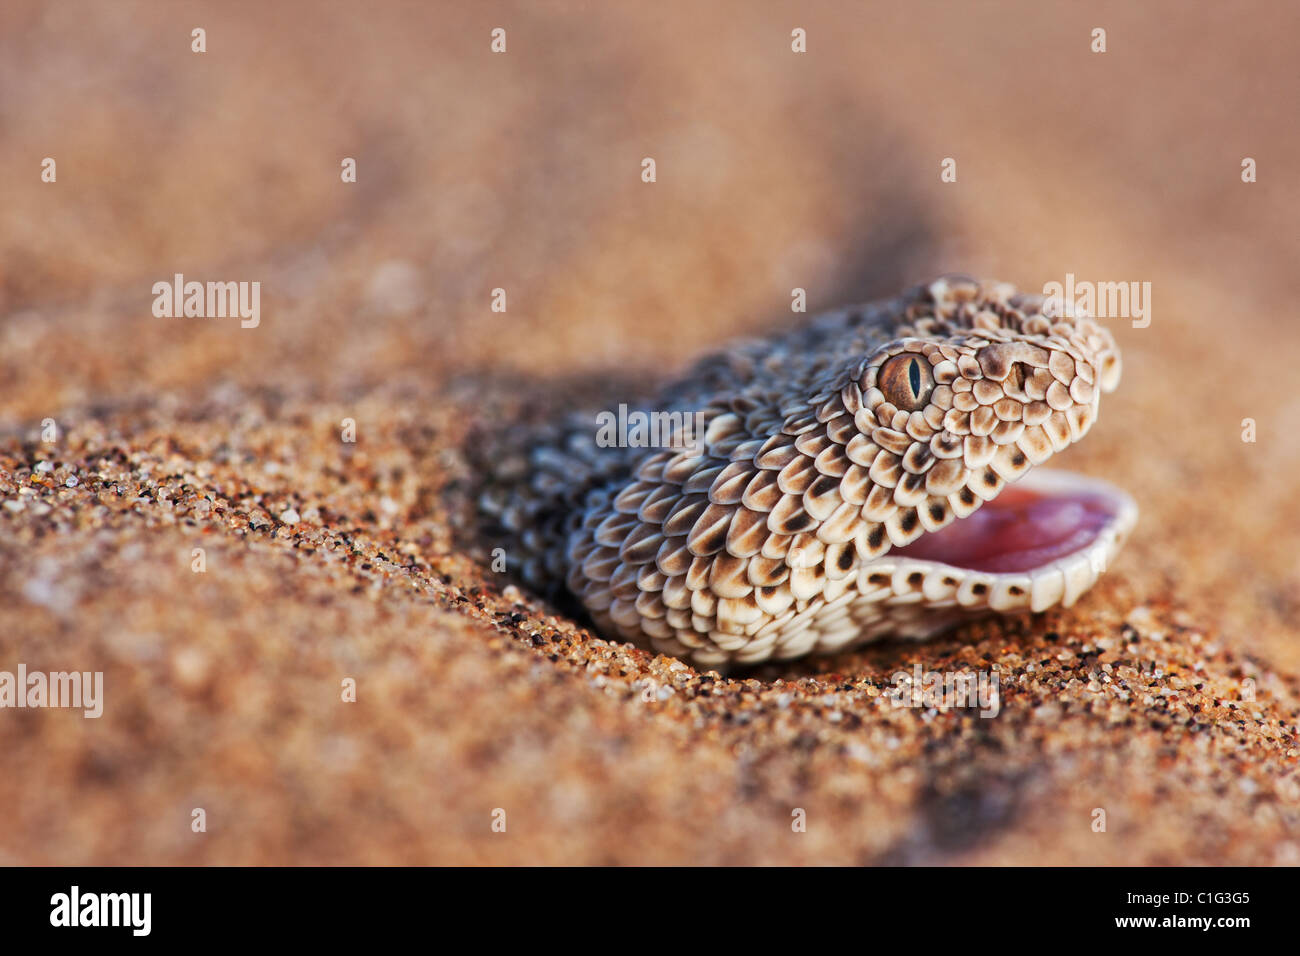 The Sidewinder Adder (Bitis peringueyi) is a venomous viper species in the Namib desert - Stock Image